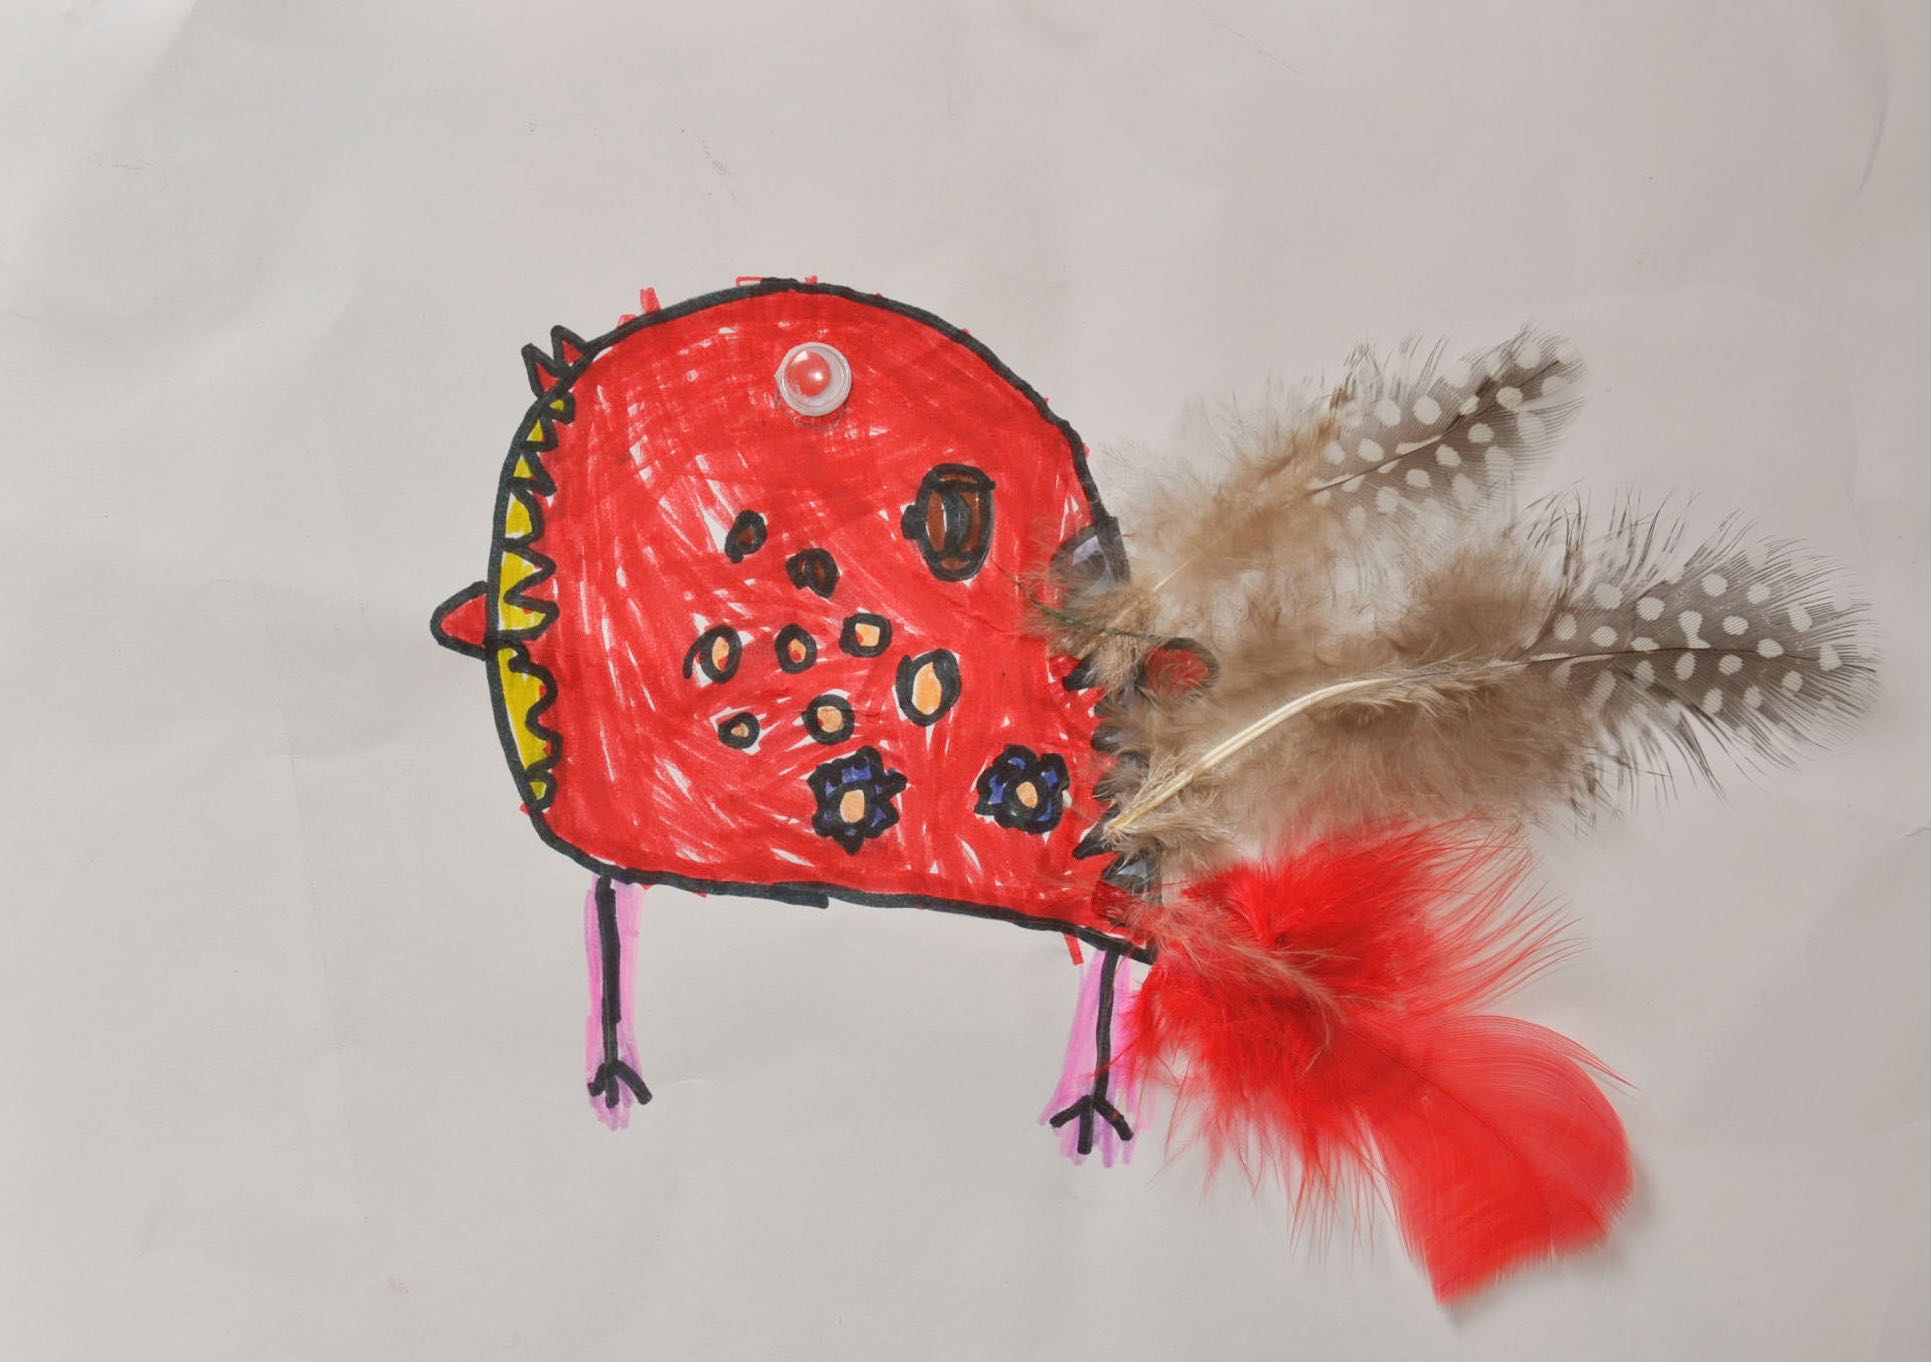 This is a child's drawing of a bird. It is an example of what can come from play therapy with young children to help them explore qualities of agency and resilience.